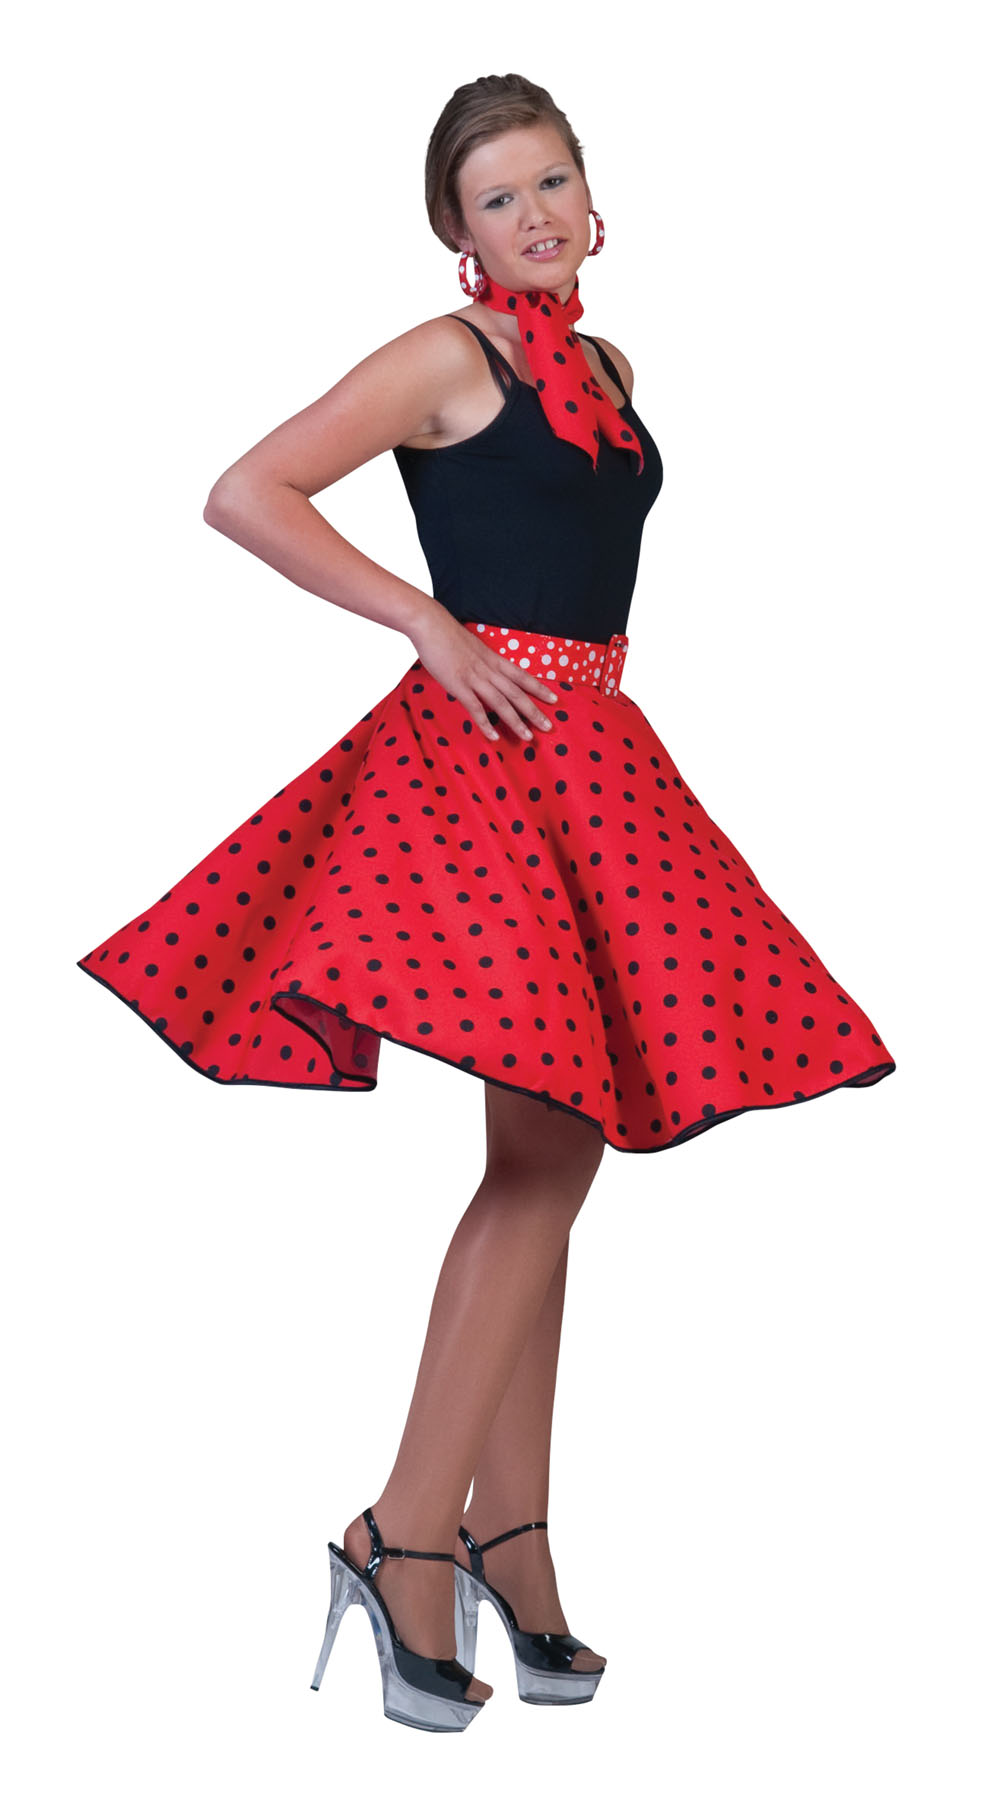 Ladies Red4 Black Polka Dots Rock N Roll Skirt 50's Fancy Dress Costume UK 10-14